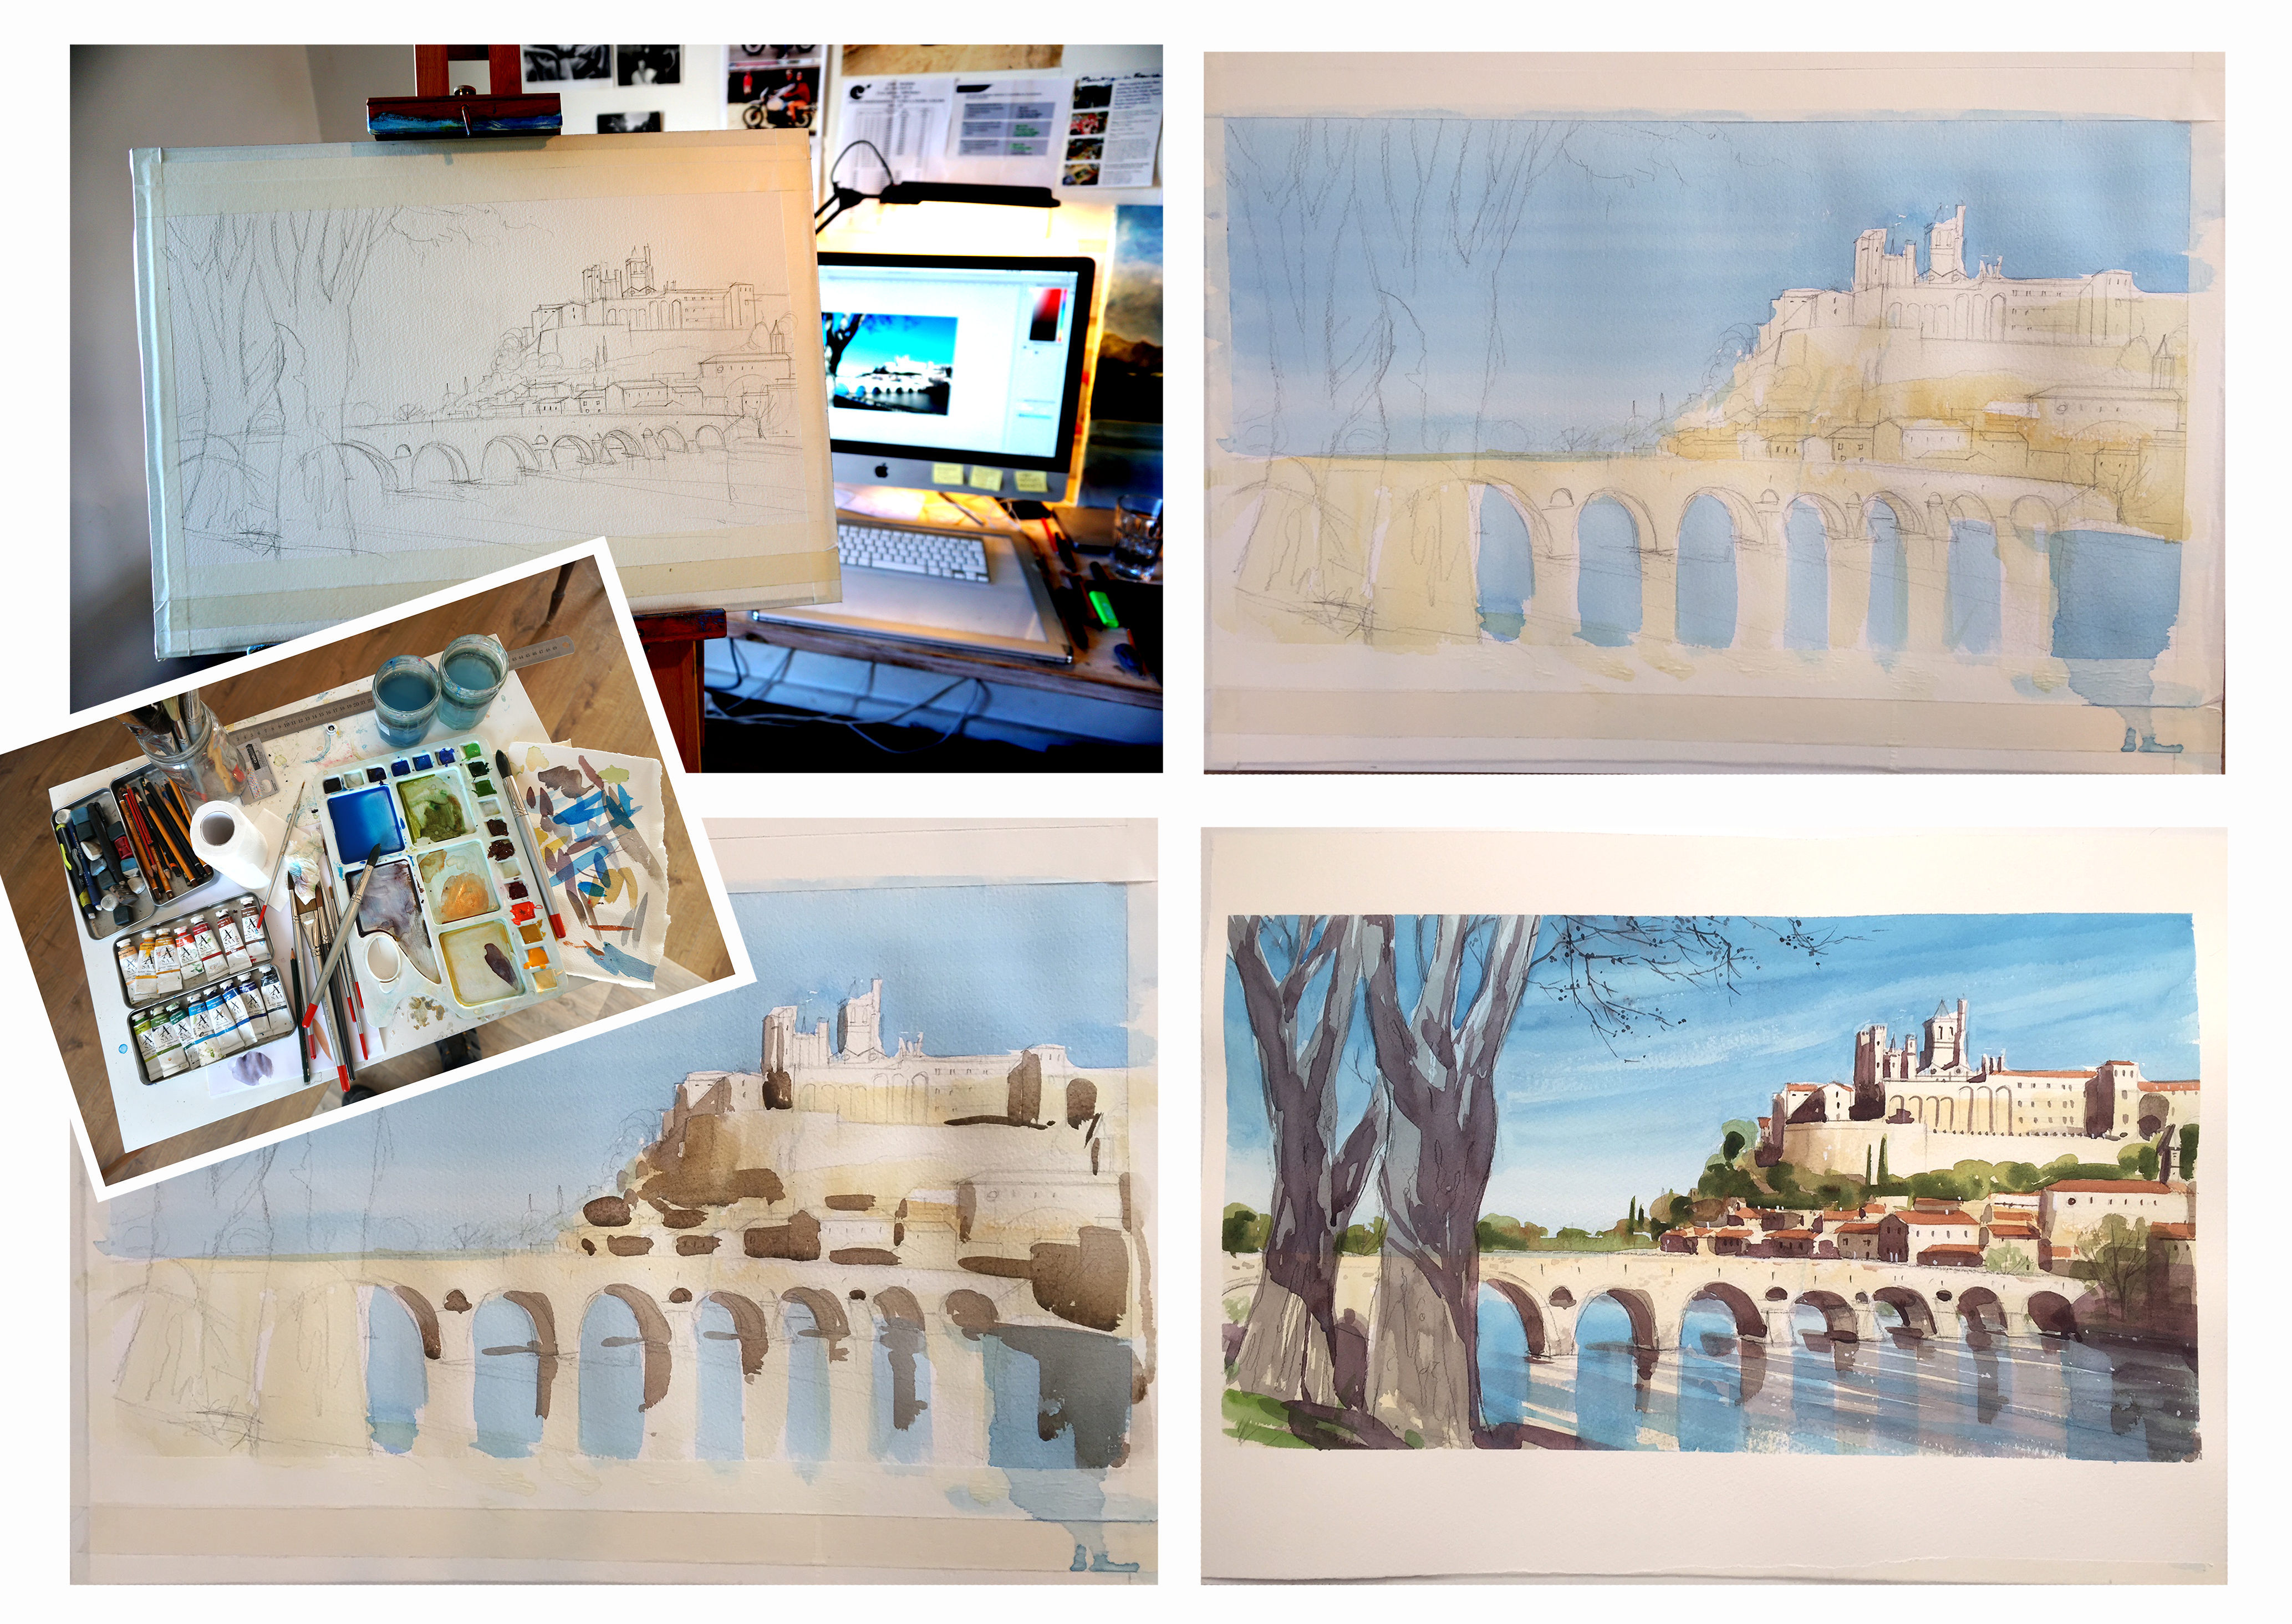 In And Out Beziers painting in france: béziers - a new painting location